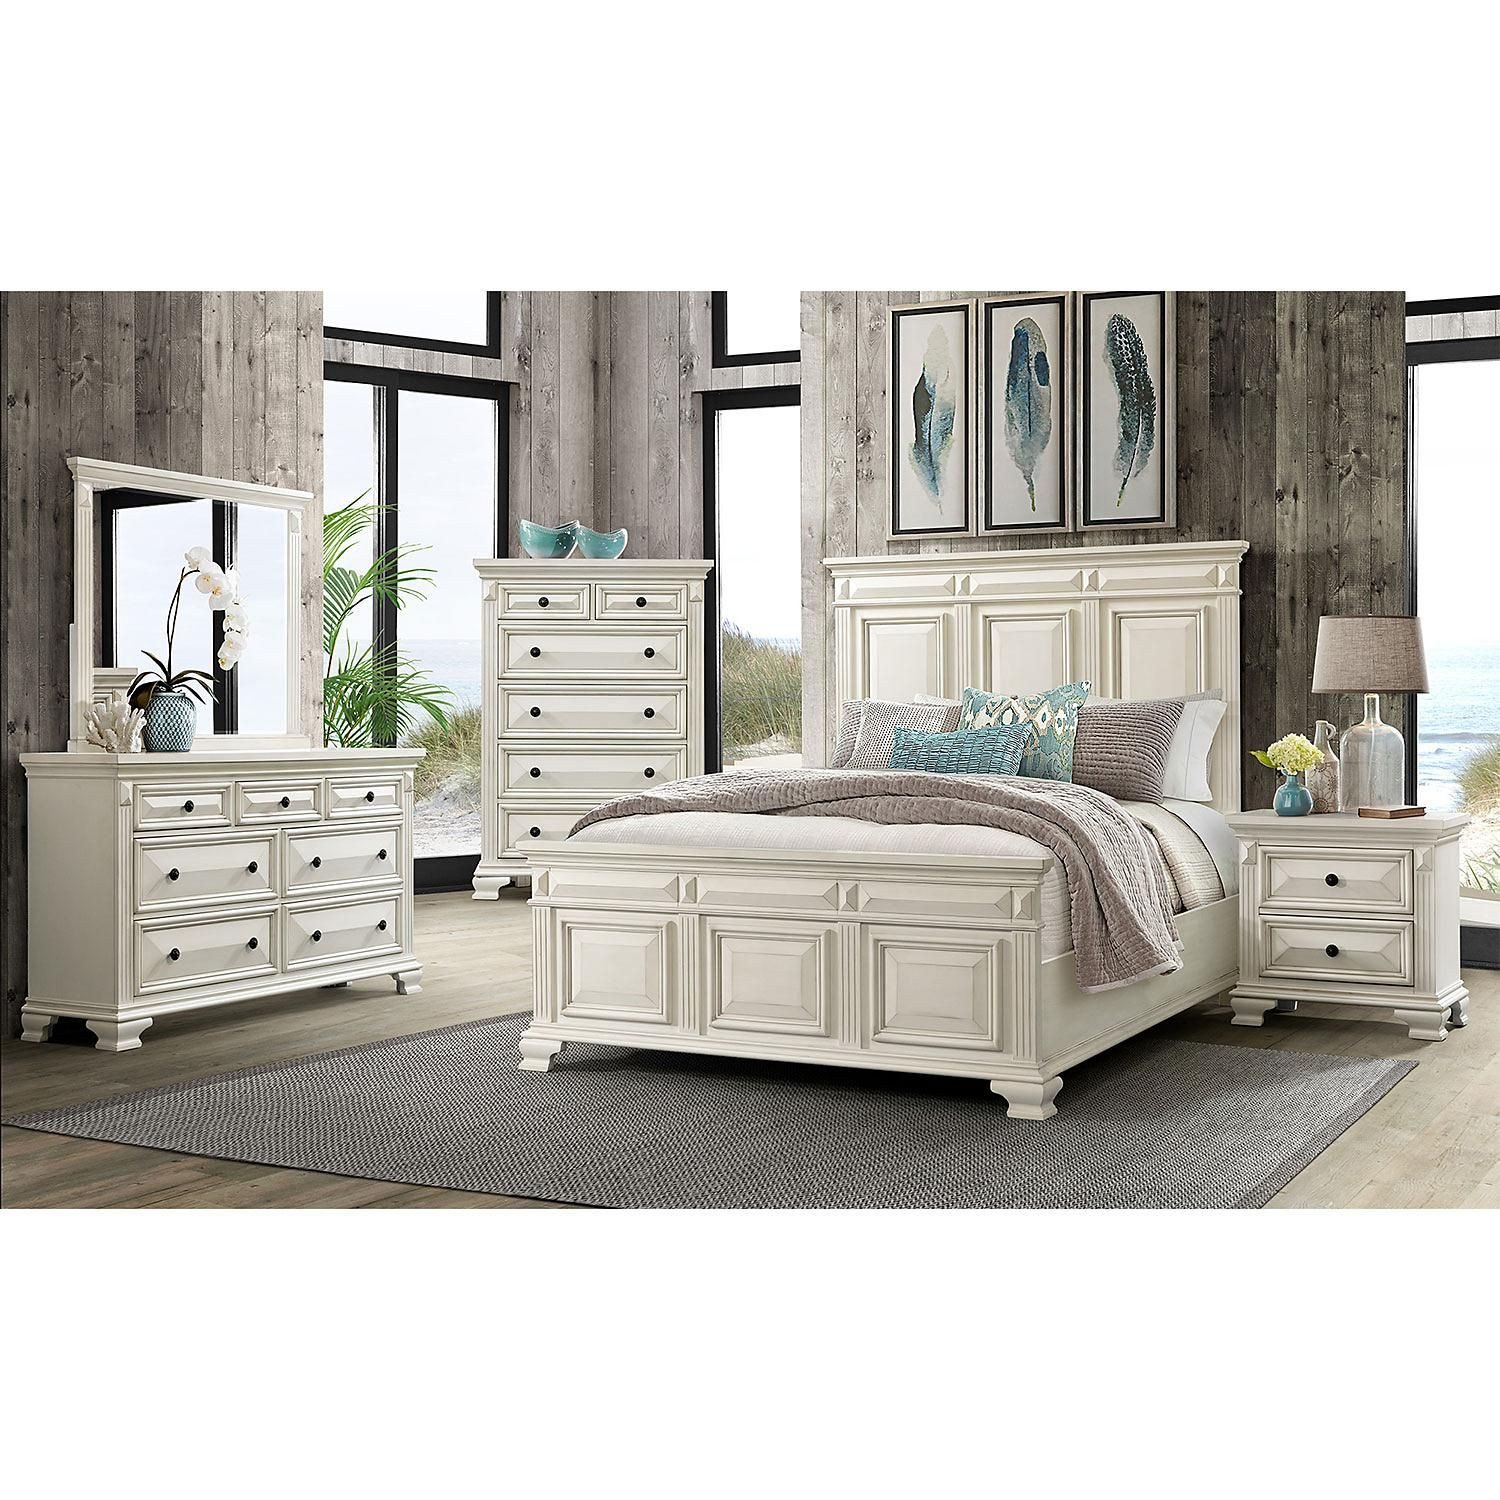 Low Profile Bedroom Set Lovely $1599 00 society Den Trent Panel 6 Piece King Bedroom Set